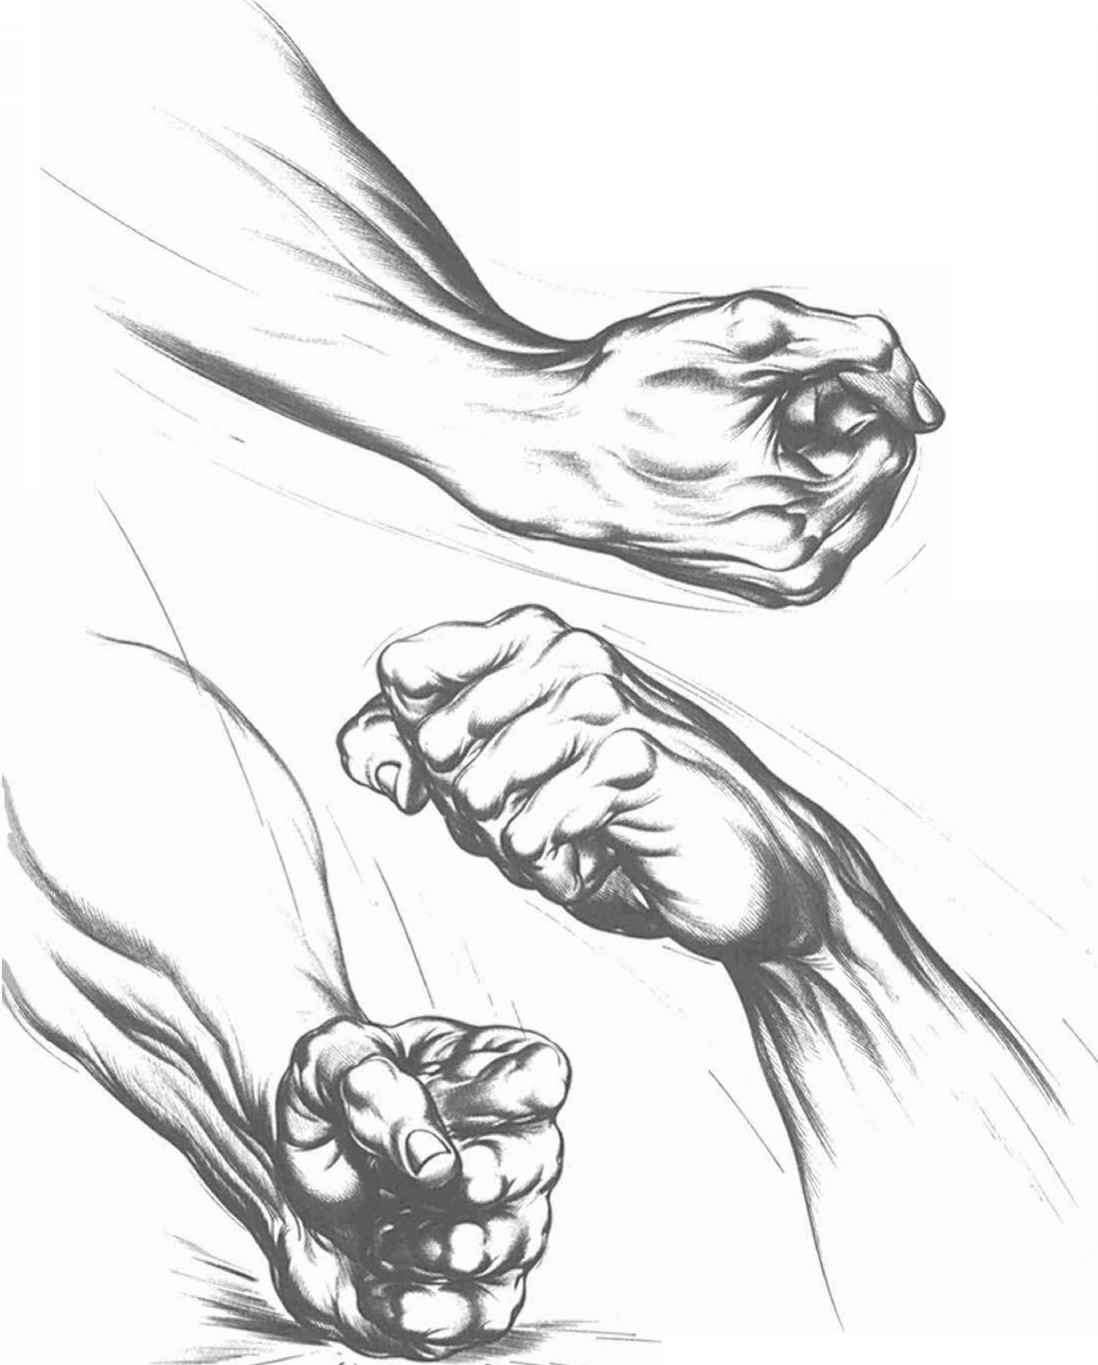 1098x1365 The Clenched Fist